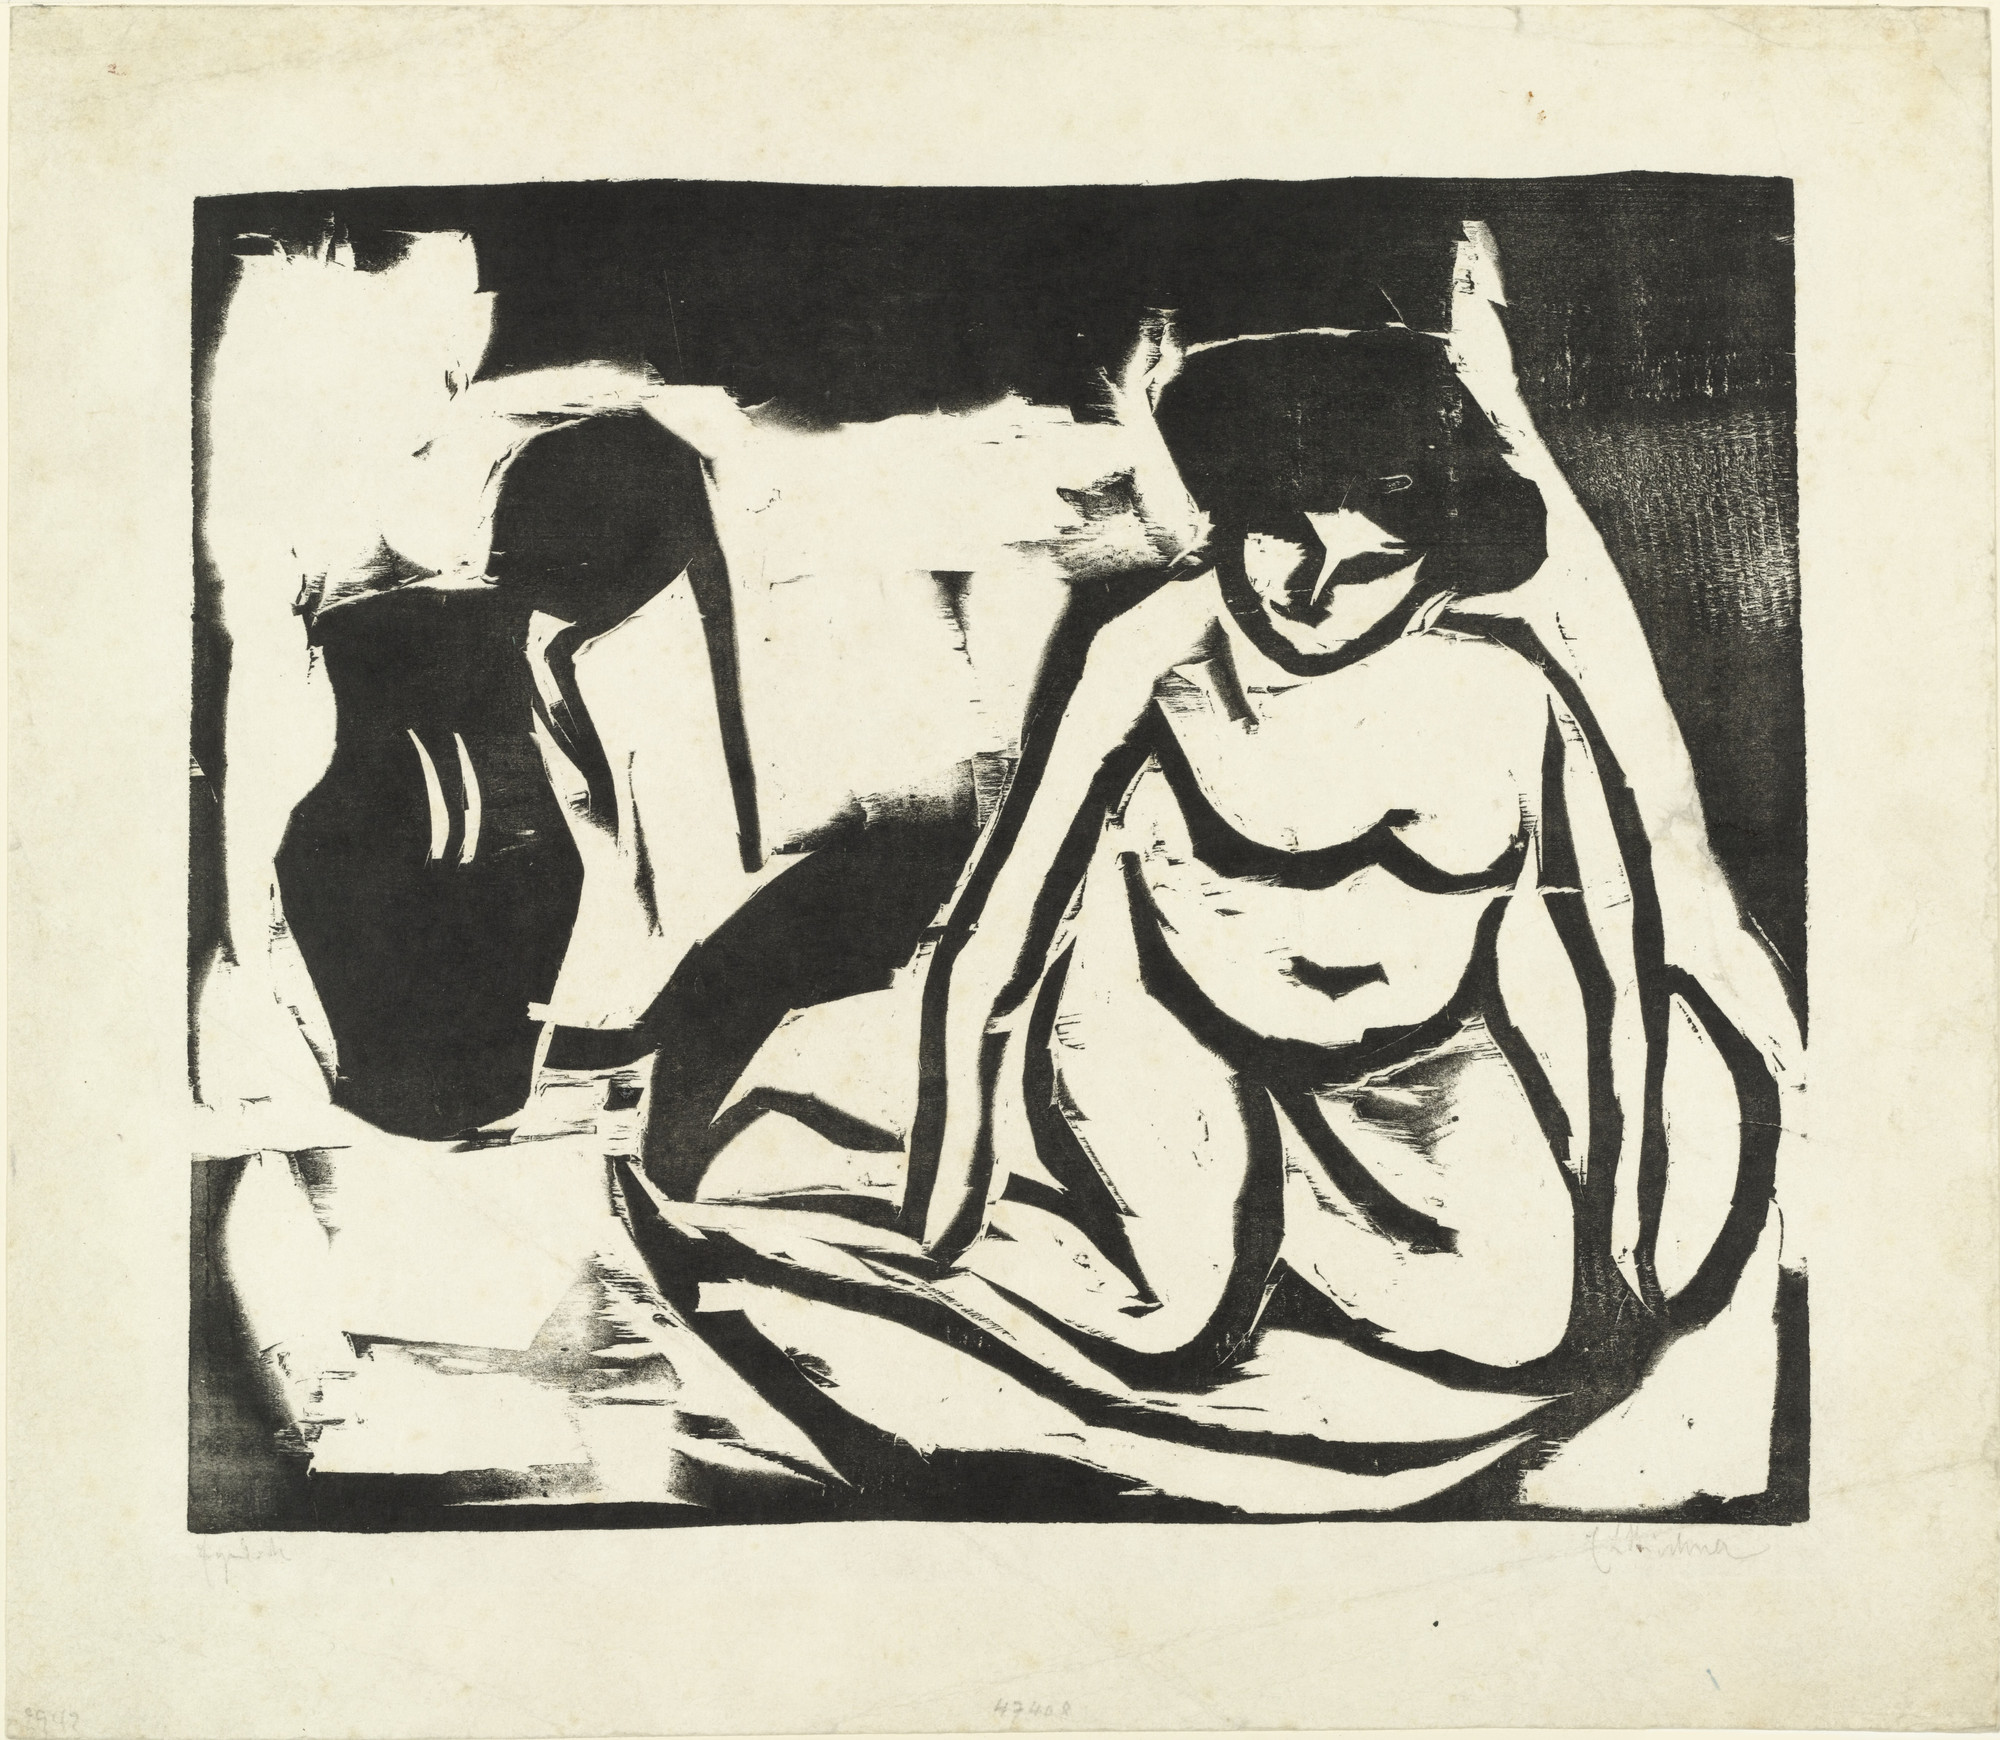 Ernst Ludwig Kirchner. Nude Girl in the Bath (Nacktes Mädchen im Bad). (1909)